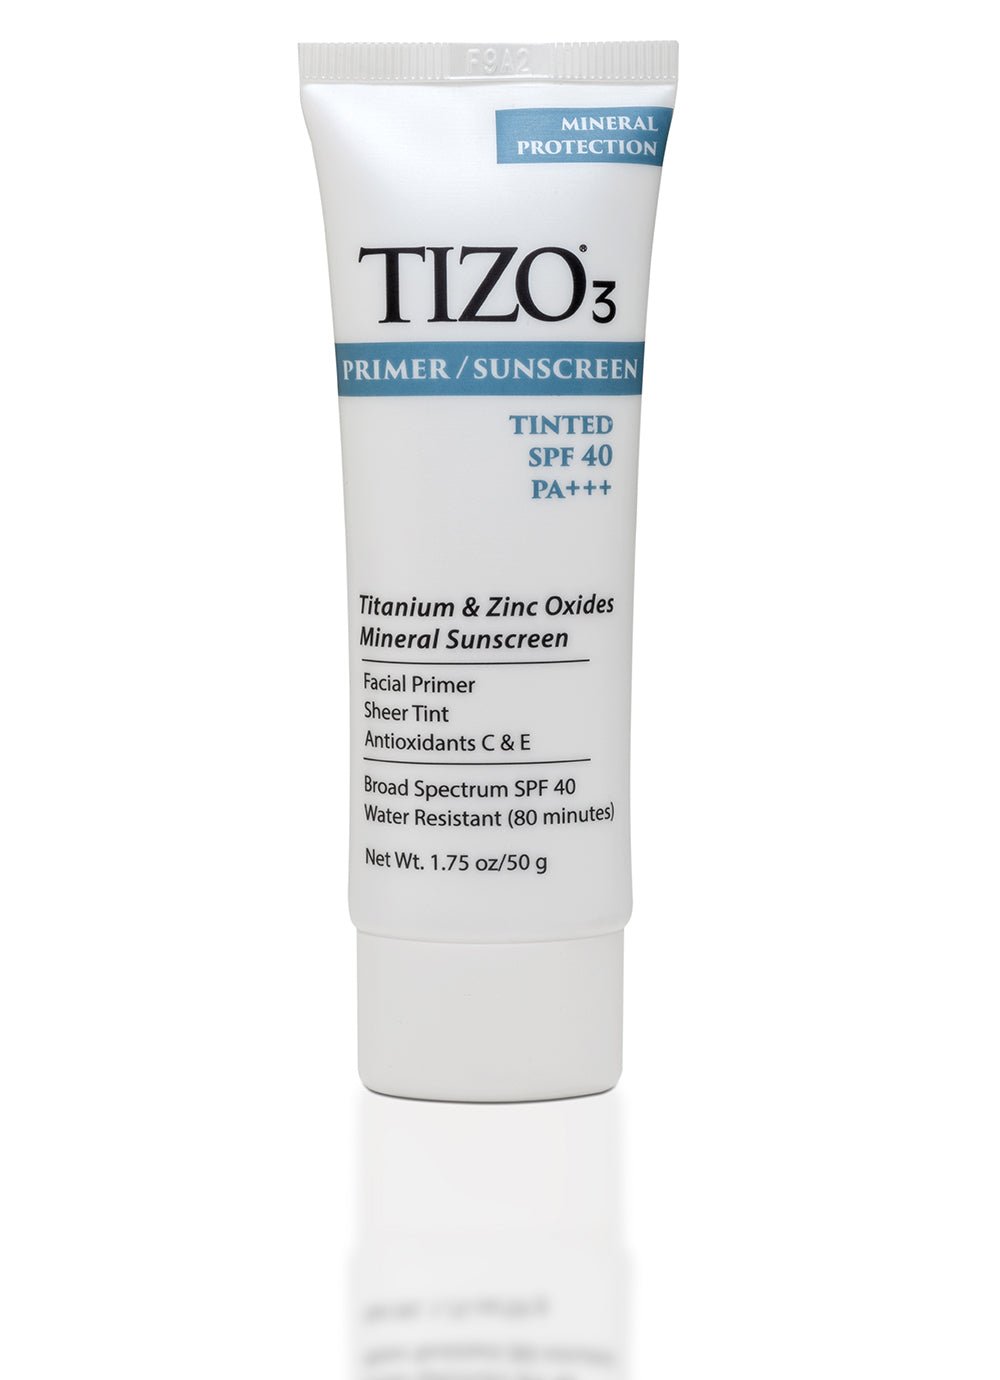 TIZO3 Facial Primer Sunscreen - tinted matte finish SPF 40